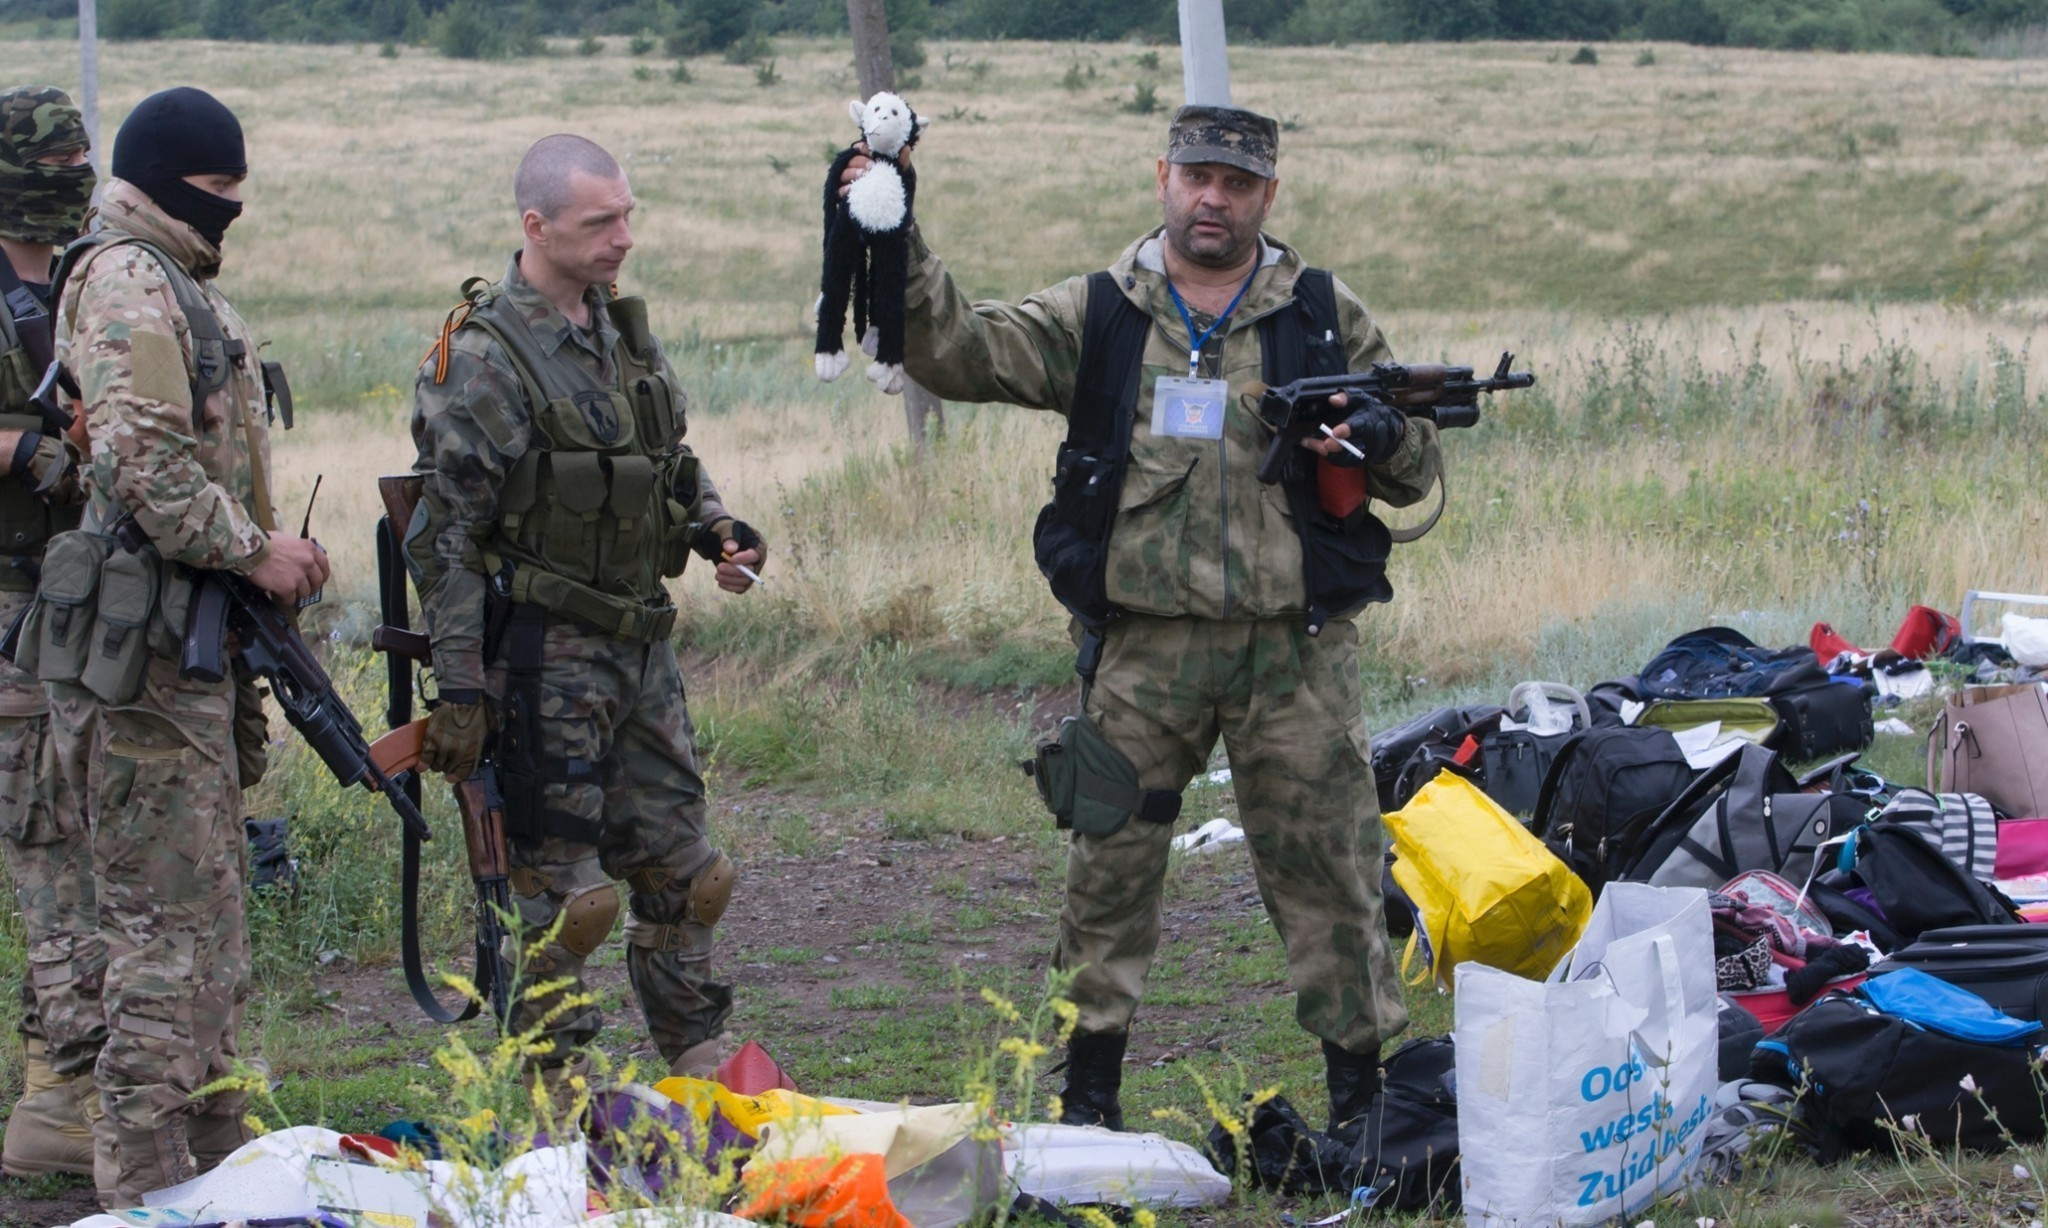 Russian media is covering up Putin's complicity in the MH17 tragedy